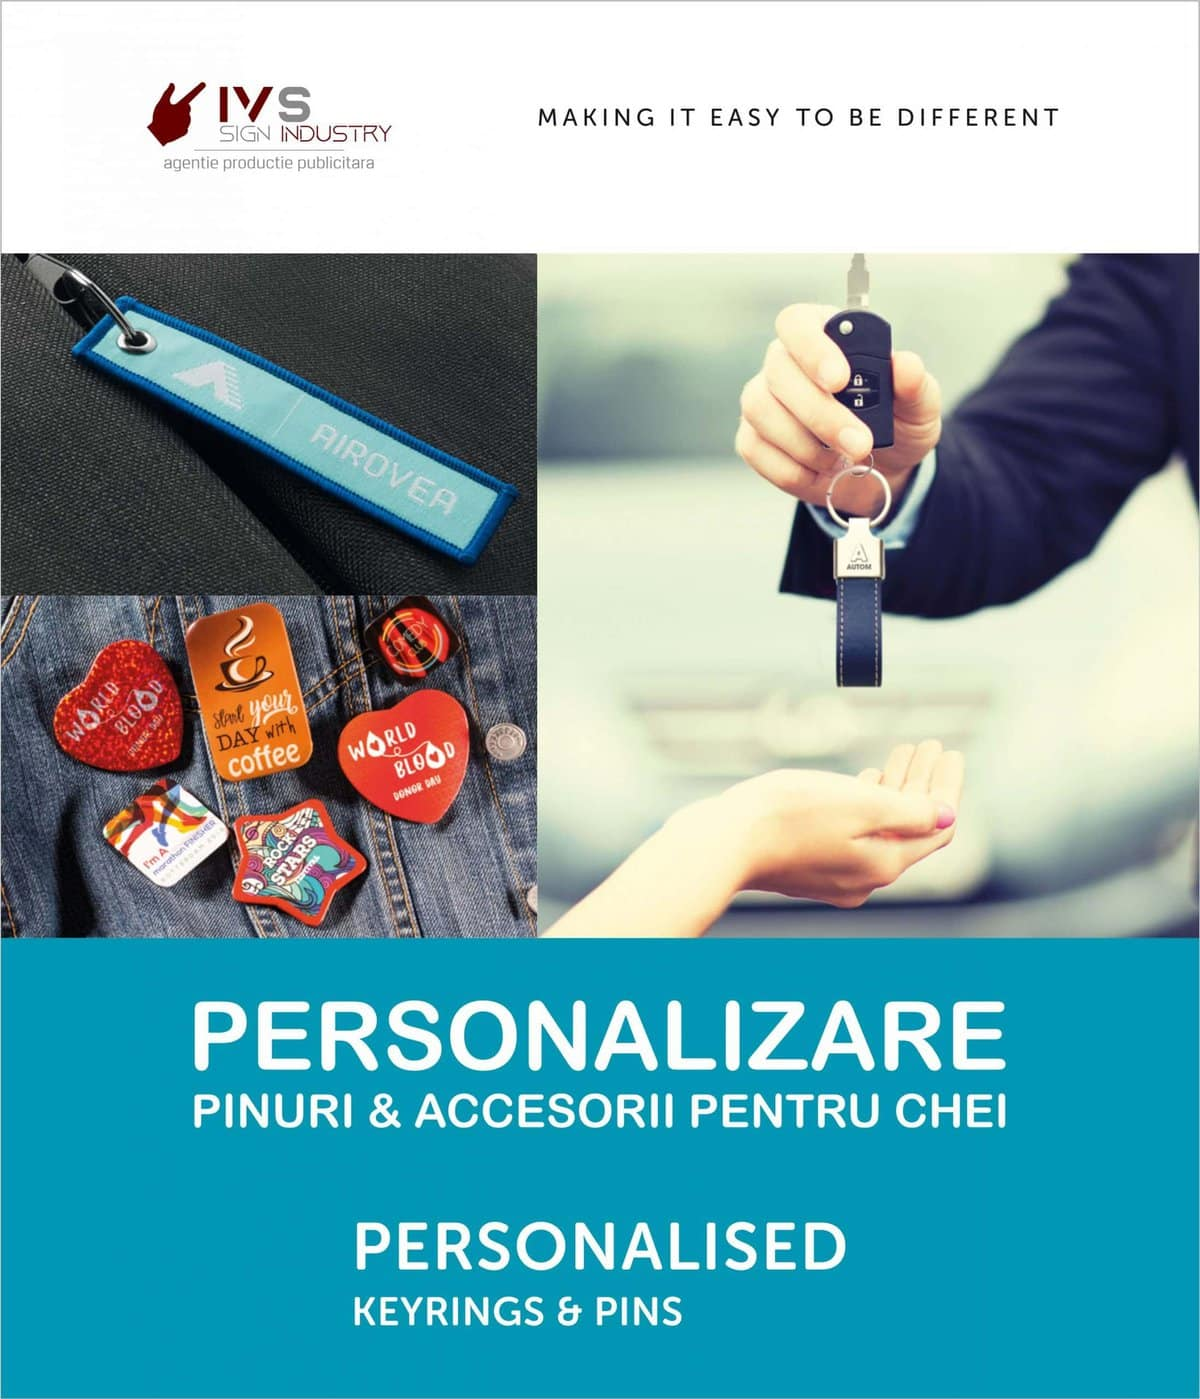 IVS SIGN INDUSTRY Keyrings and Pins